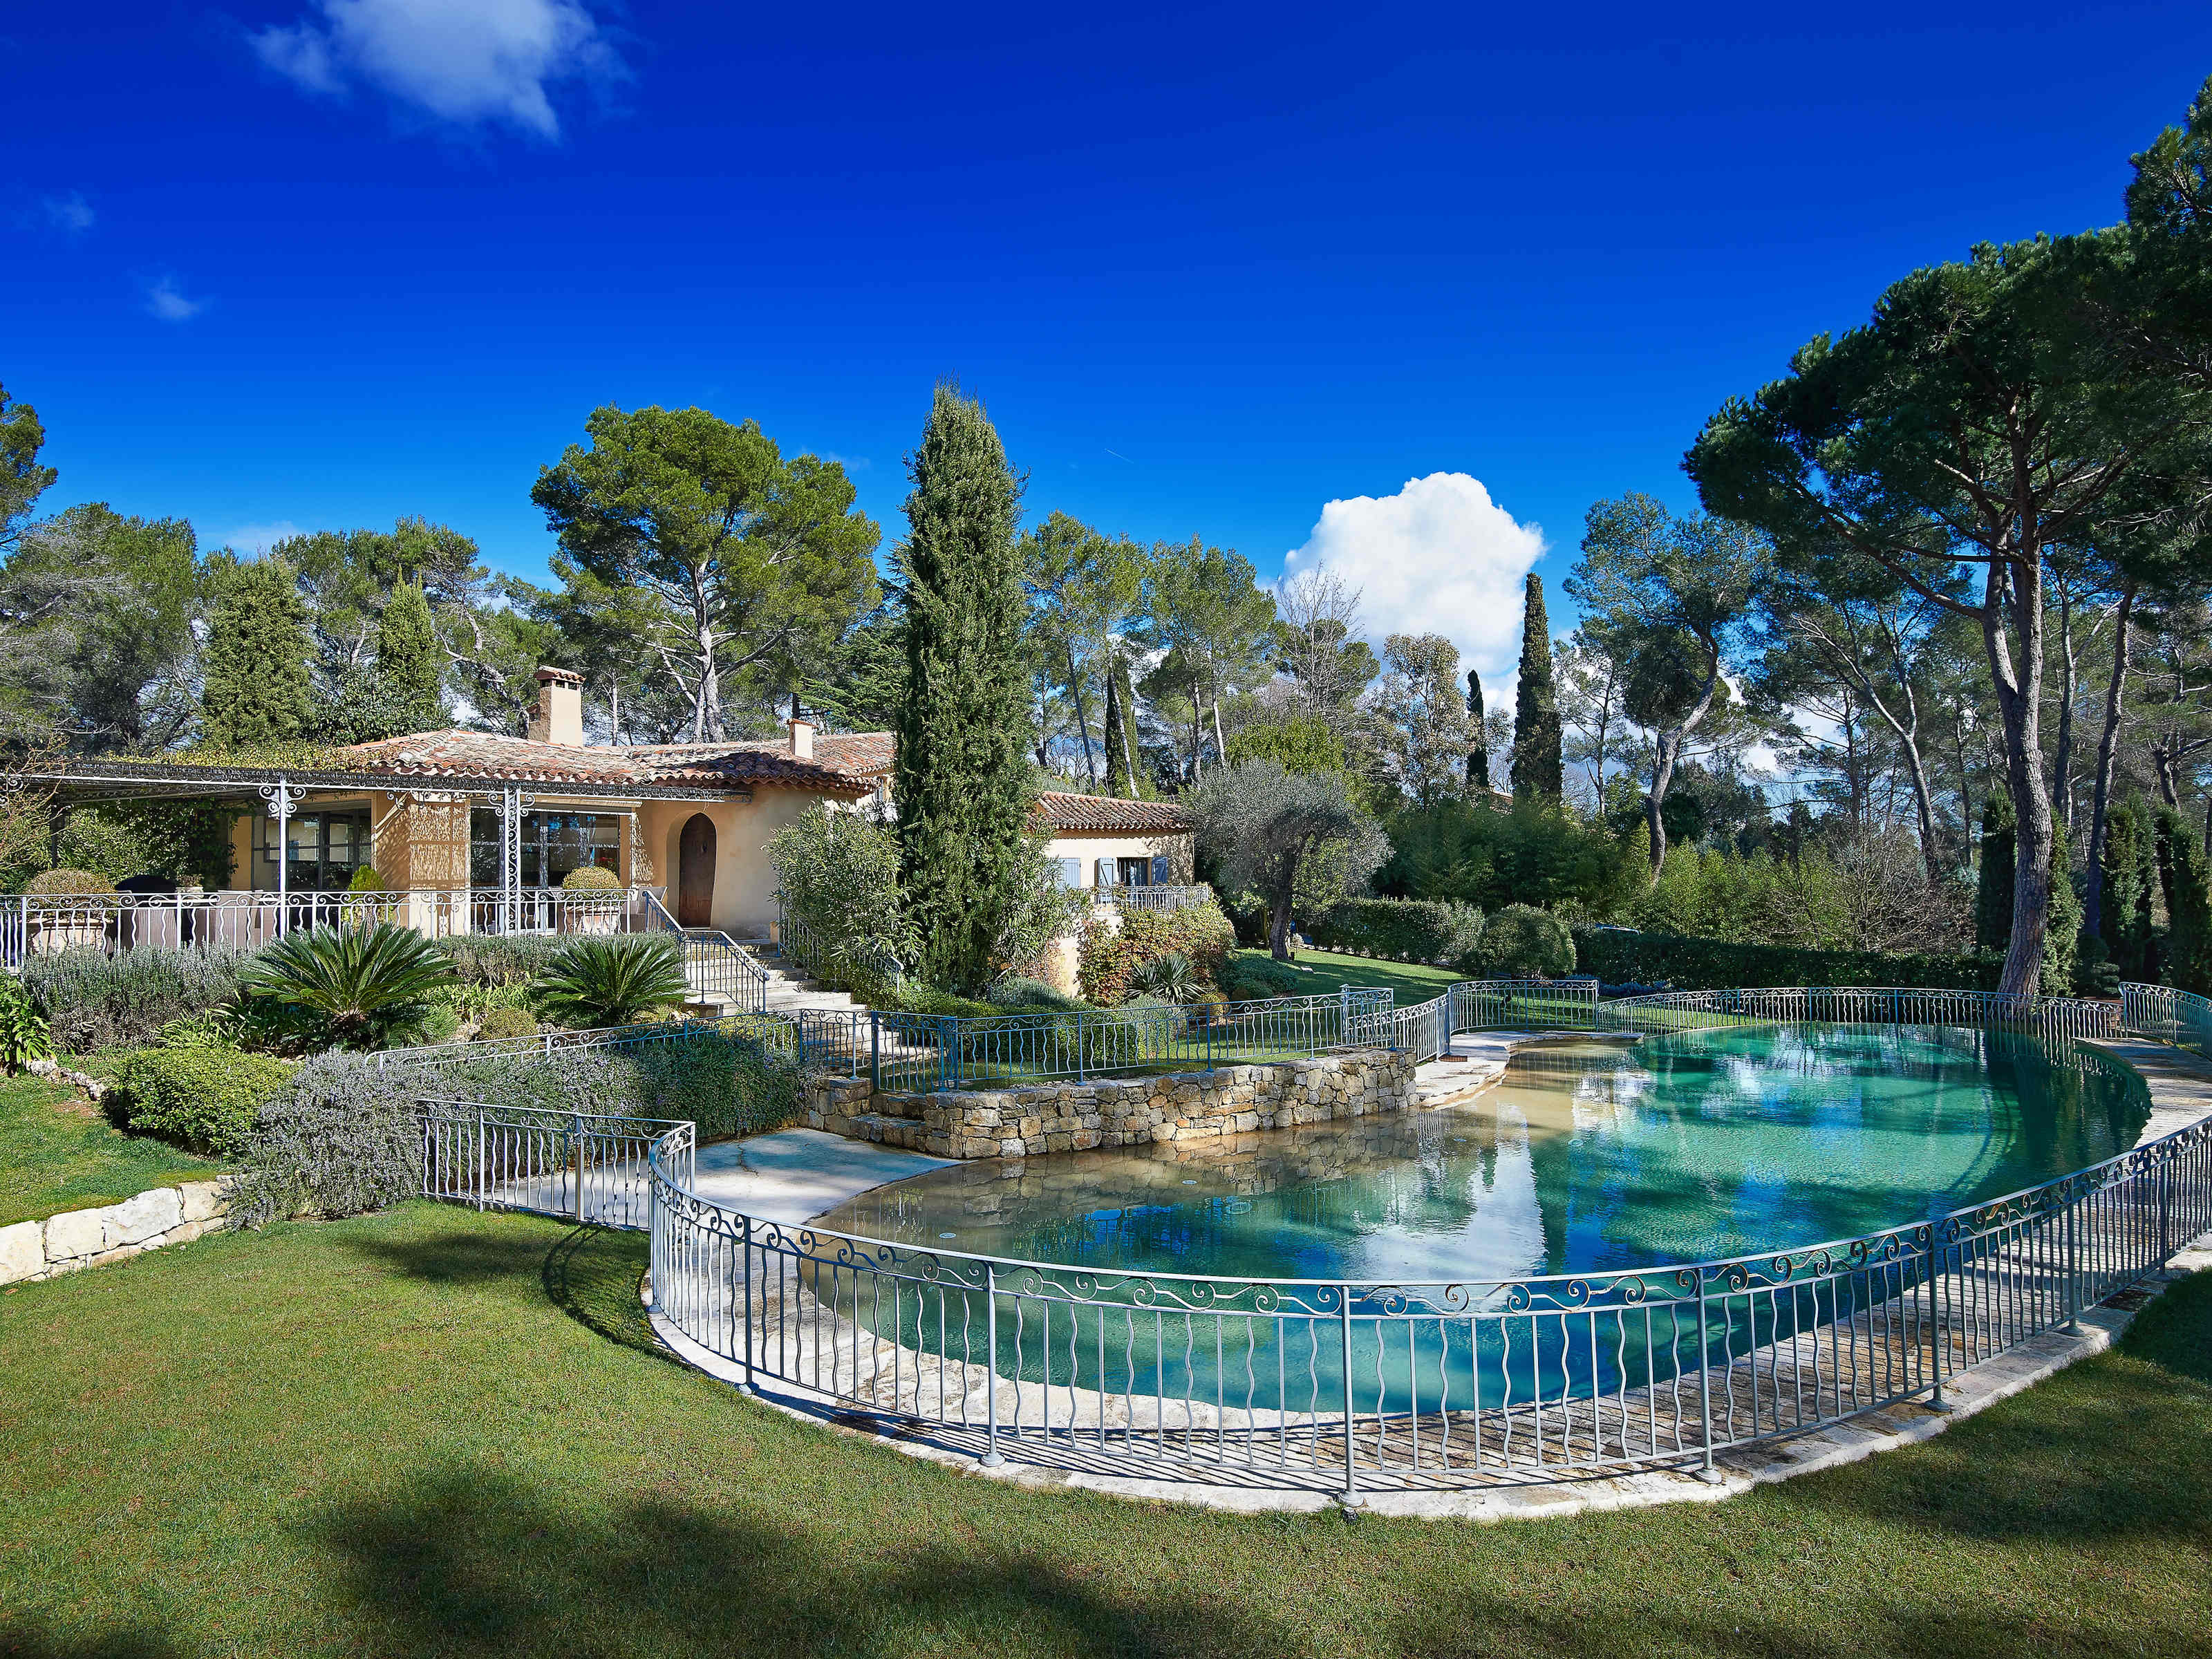 Single Family Home for Sale at Mougins - Exclusive area, stunning property for sale Mougins, Provence-Alpes-Cote D'Azur 06250 France